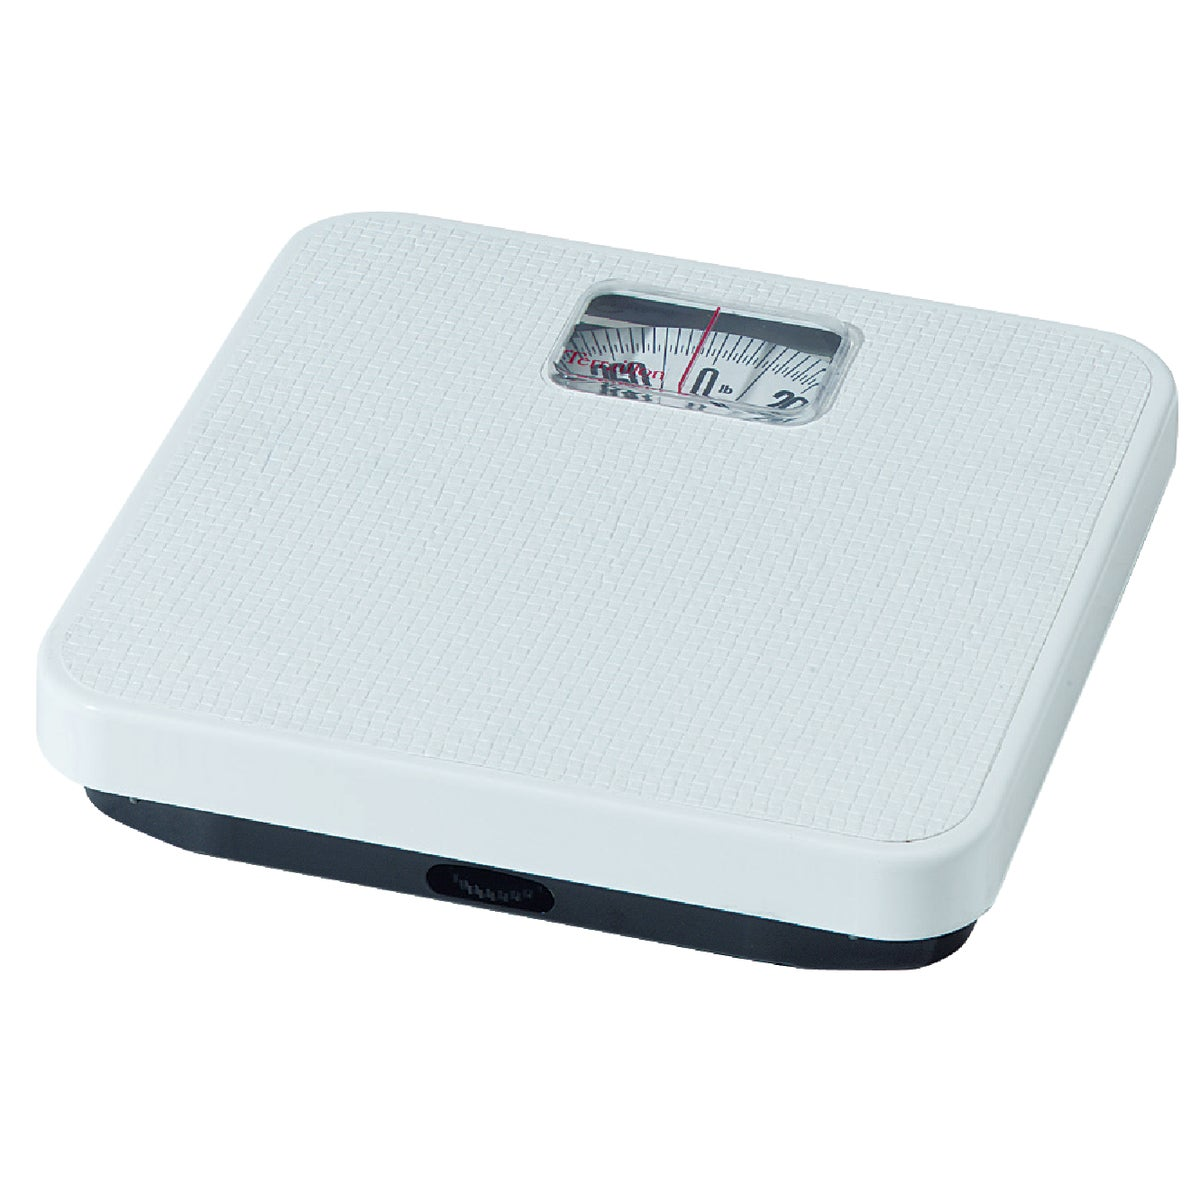 300LB WHT BATH SCALE - 20044014 by Taylor Precision